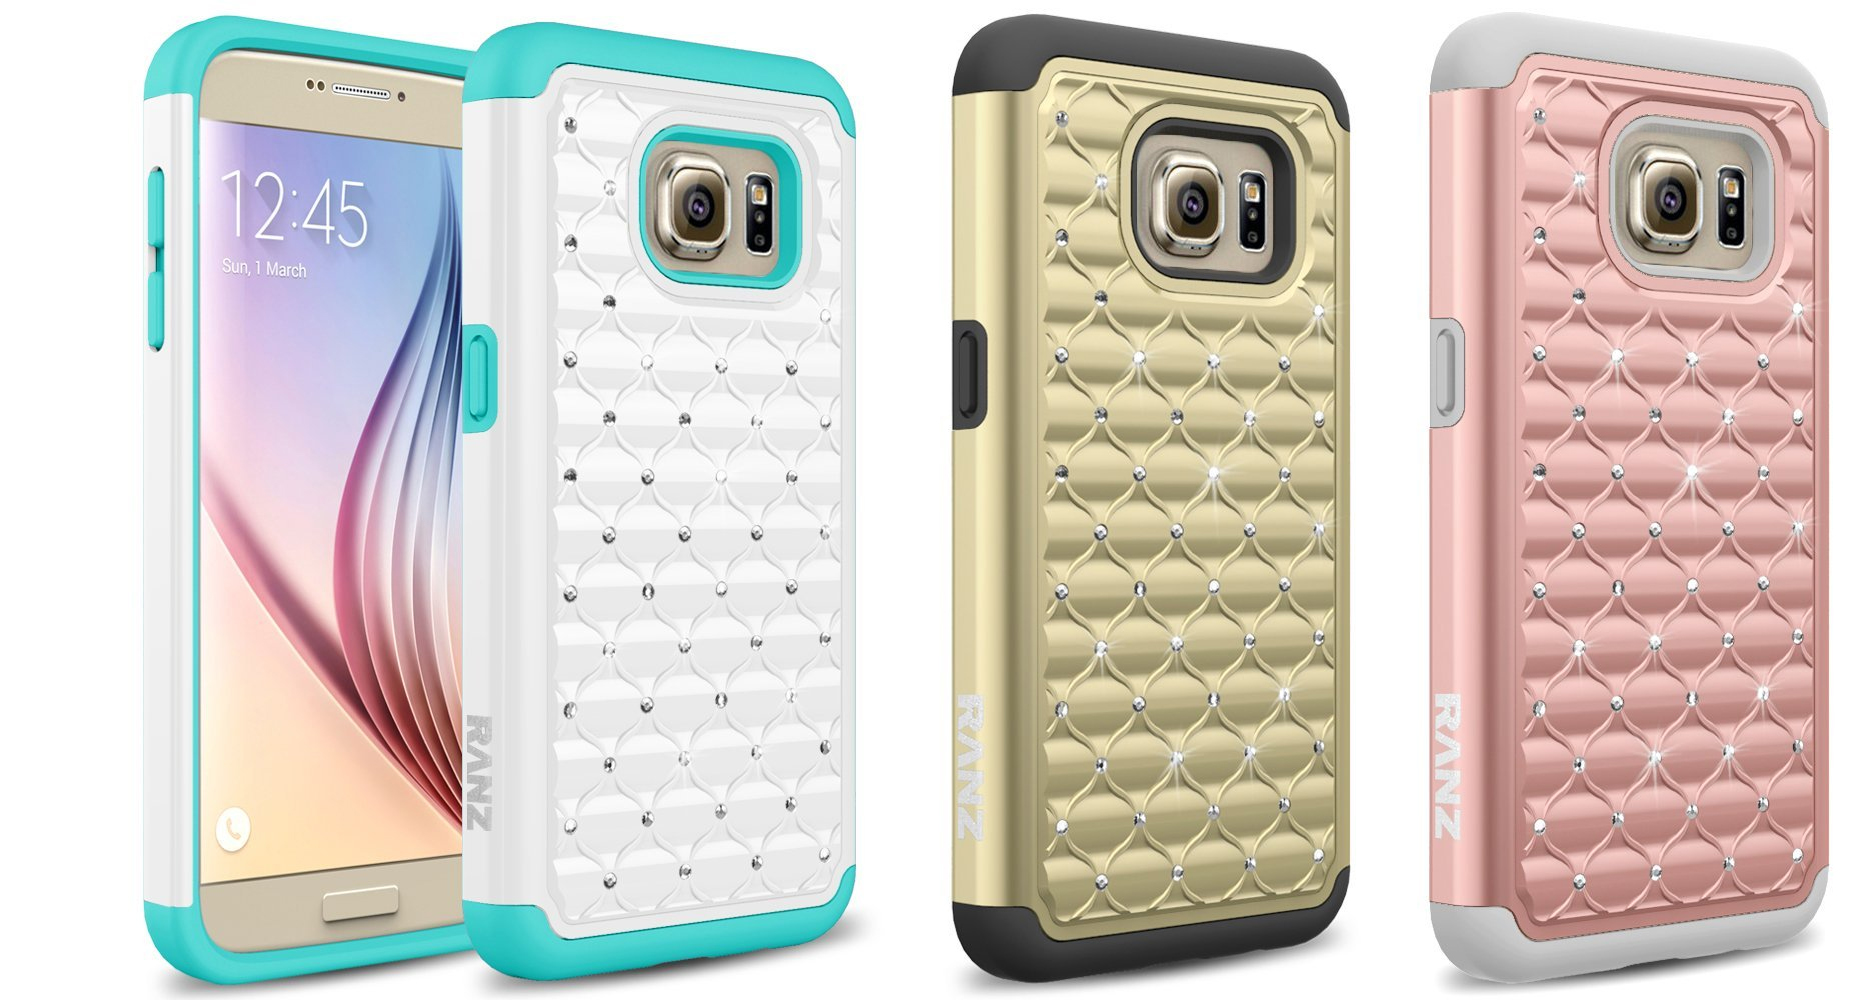 Galaxy S7 Case Diamond Studded Bling Silicone Rubber Skin Hard Case